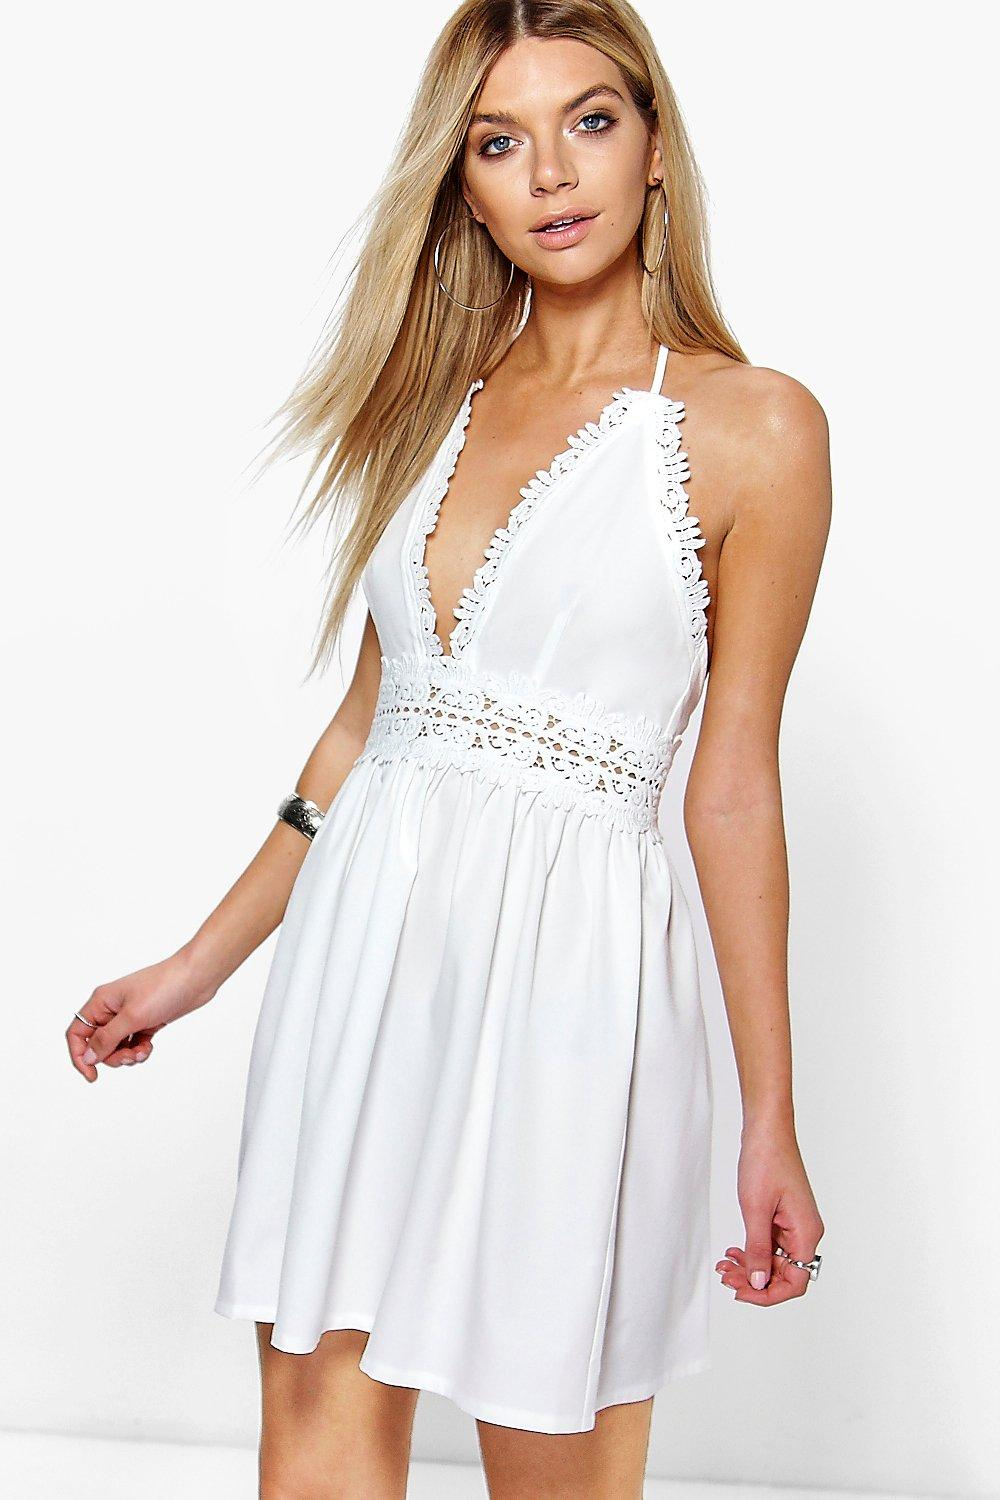 Savannah Chrochet Lace Skater Dress